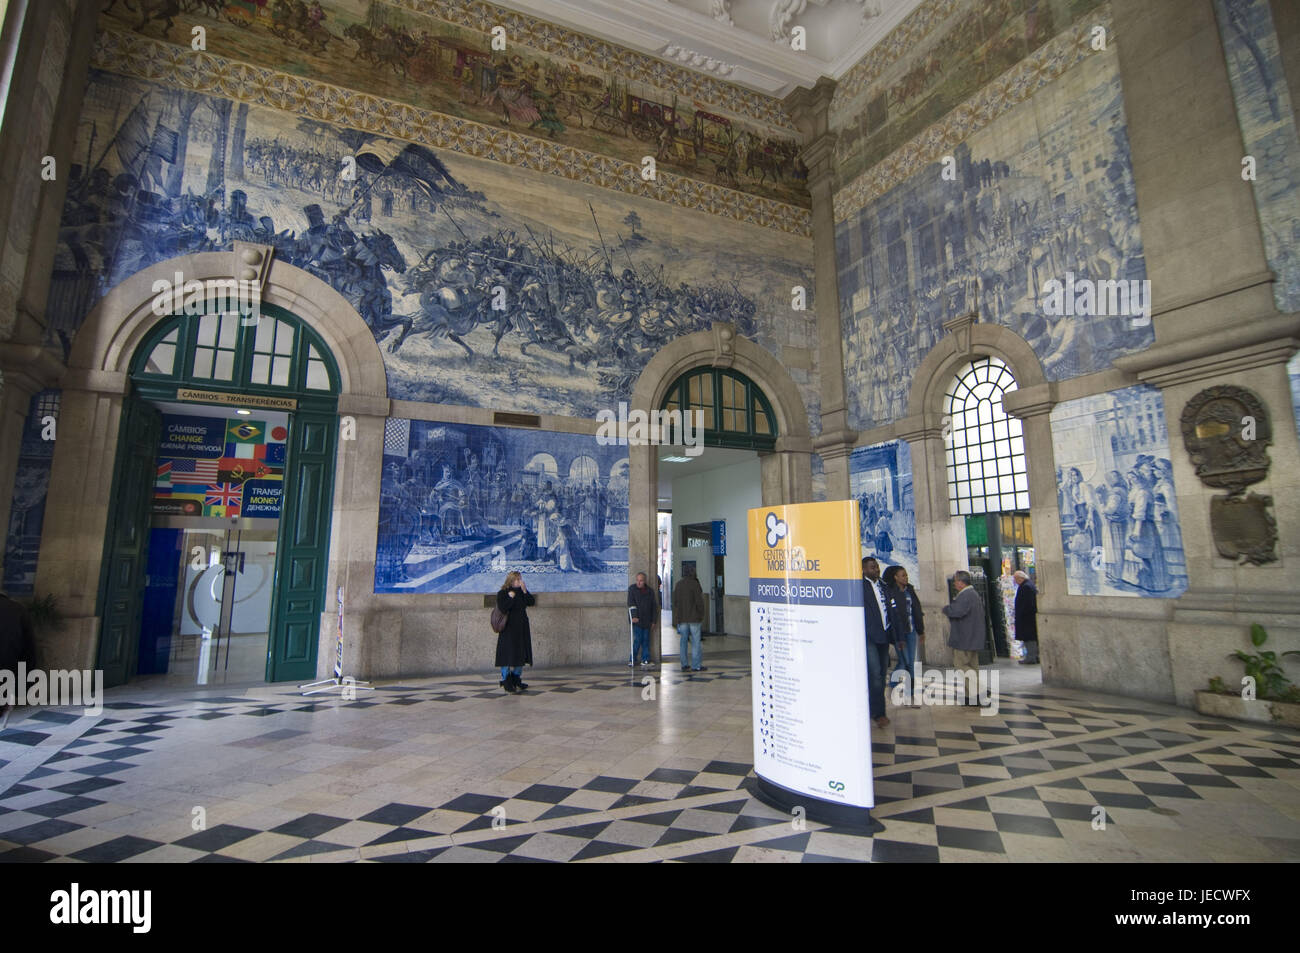 Azulejos, story on tiles painted in the railway station Sao Bento, postage, Portugal, - Stock Image